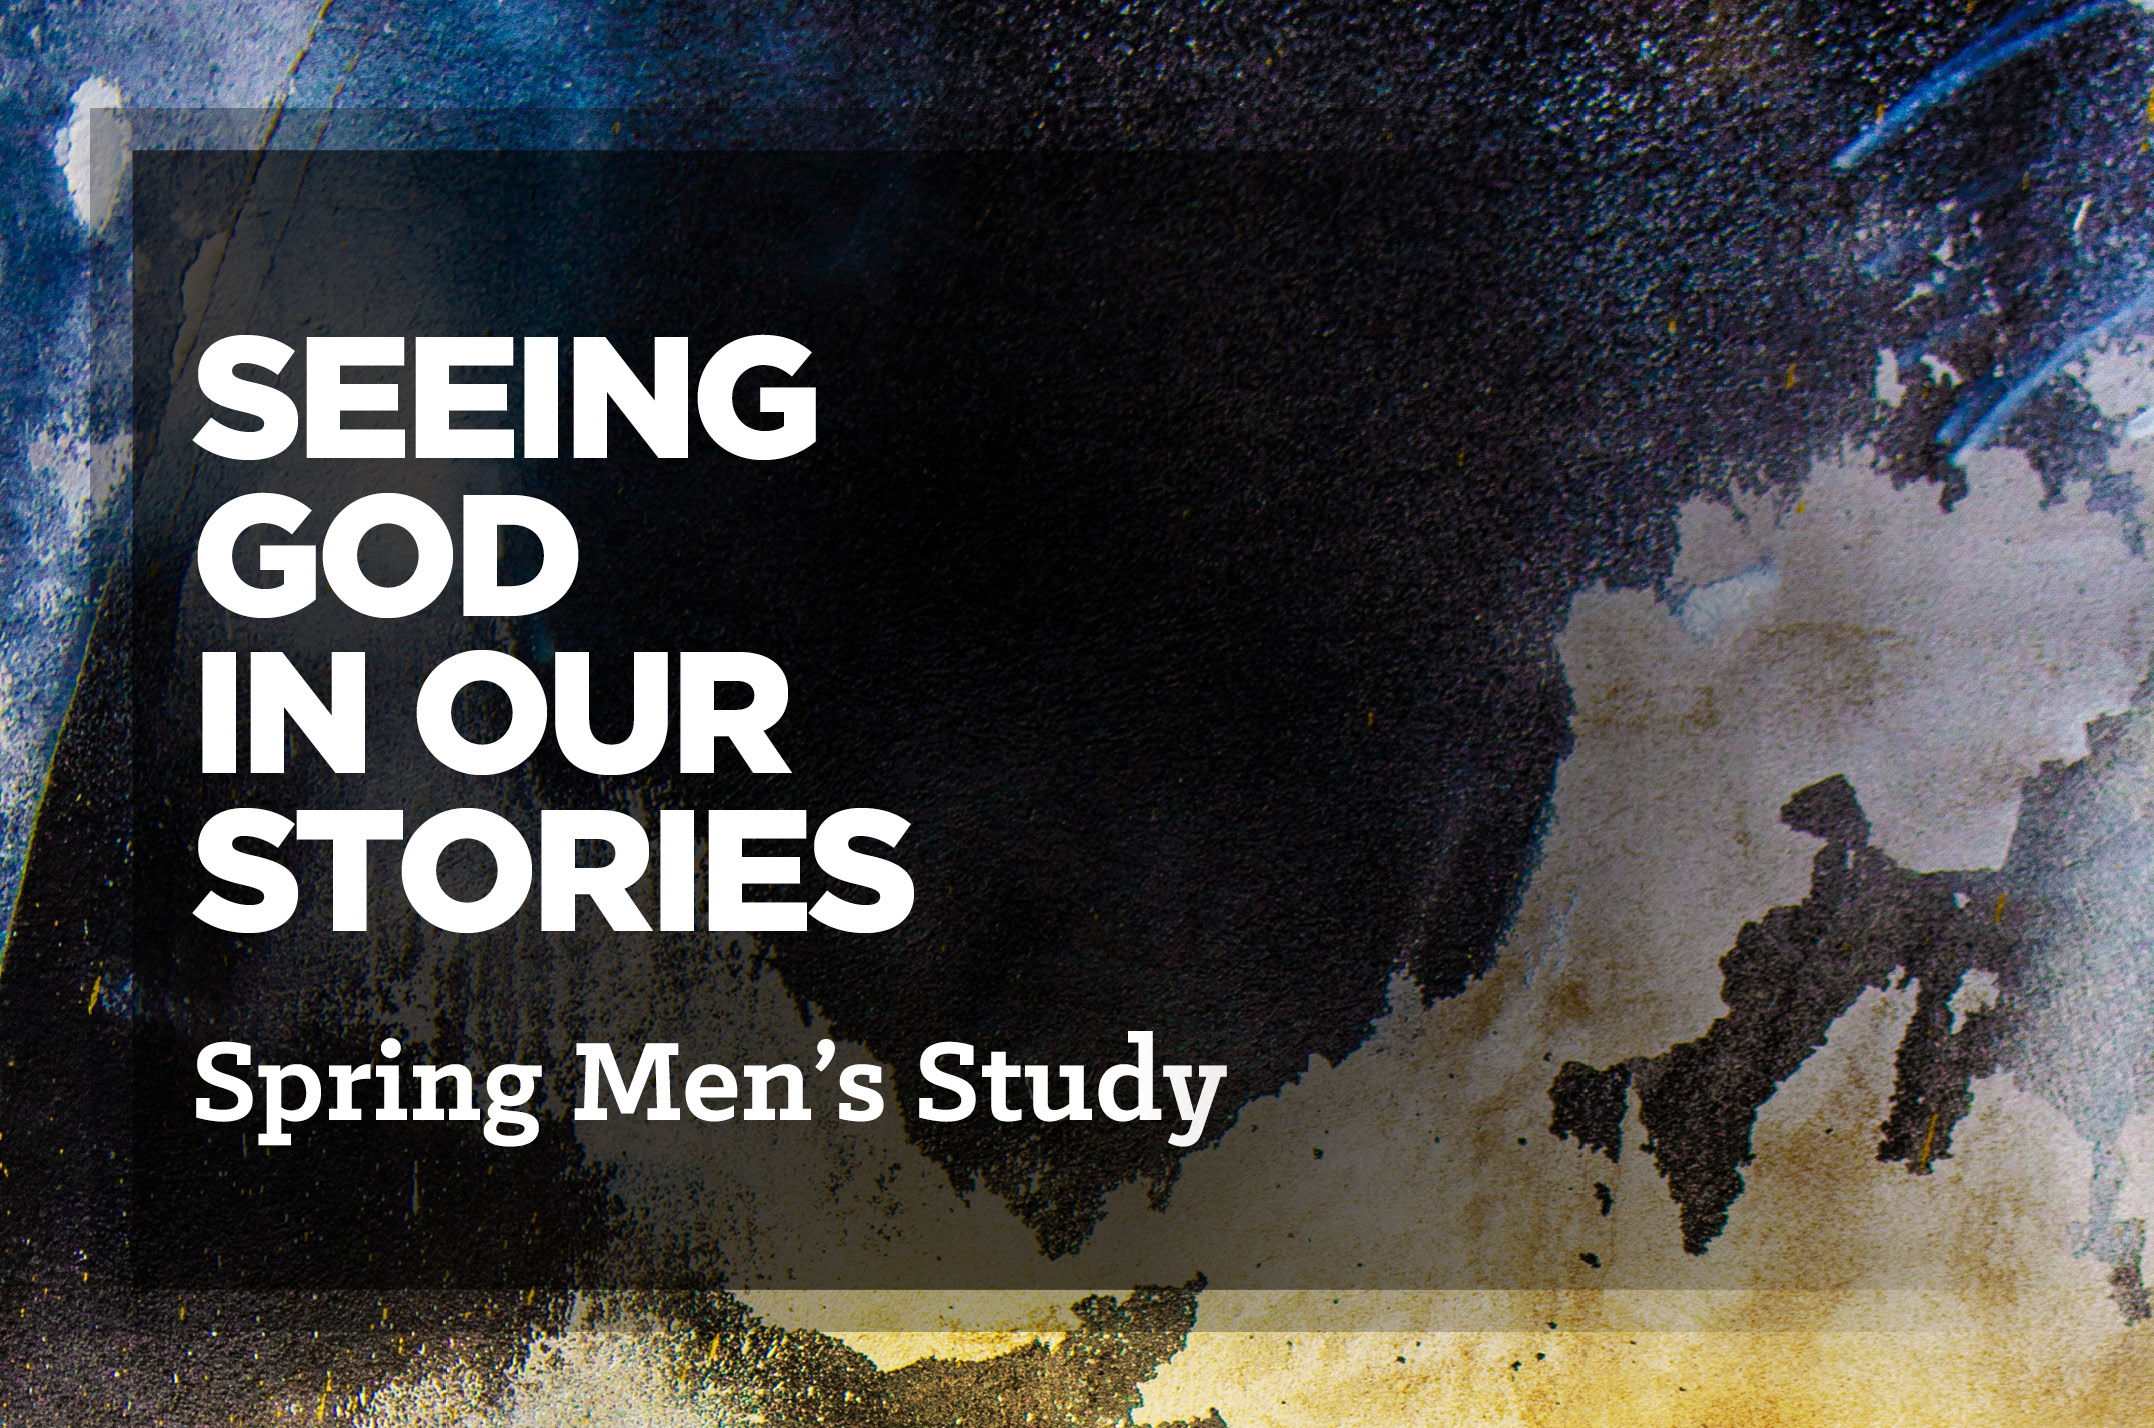 Spring Men's Study | Seeing God in our Stories (Cancelled)